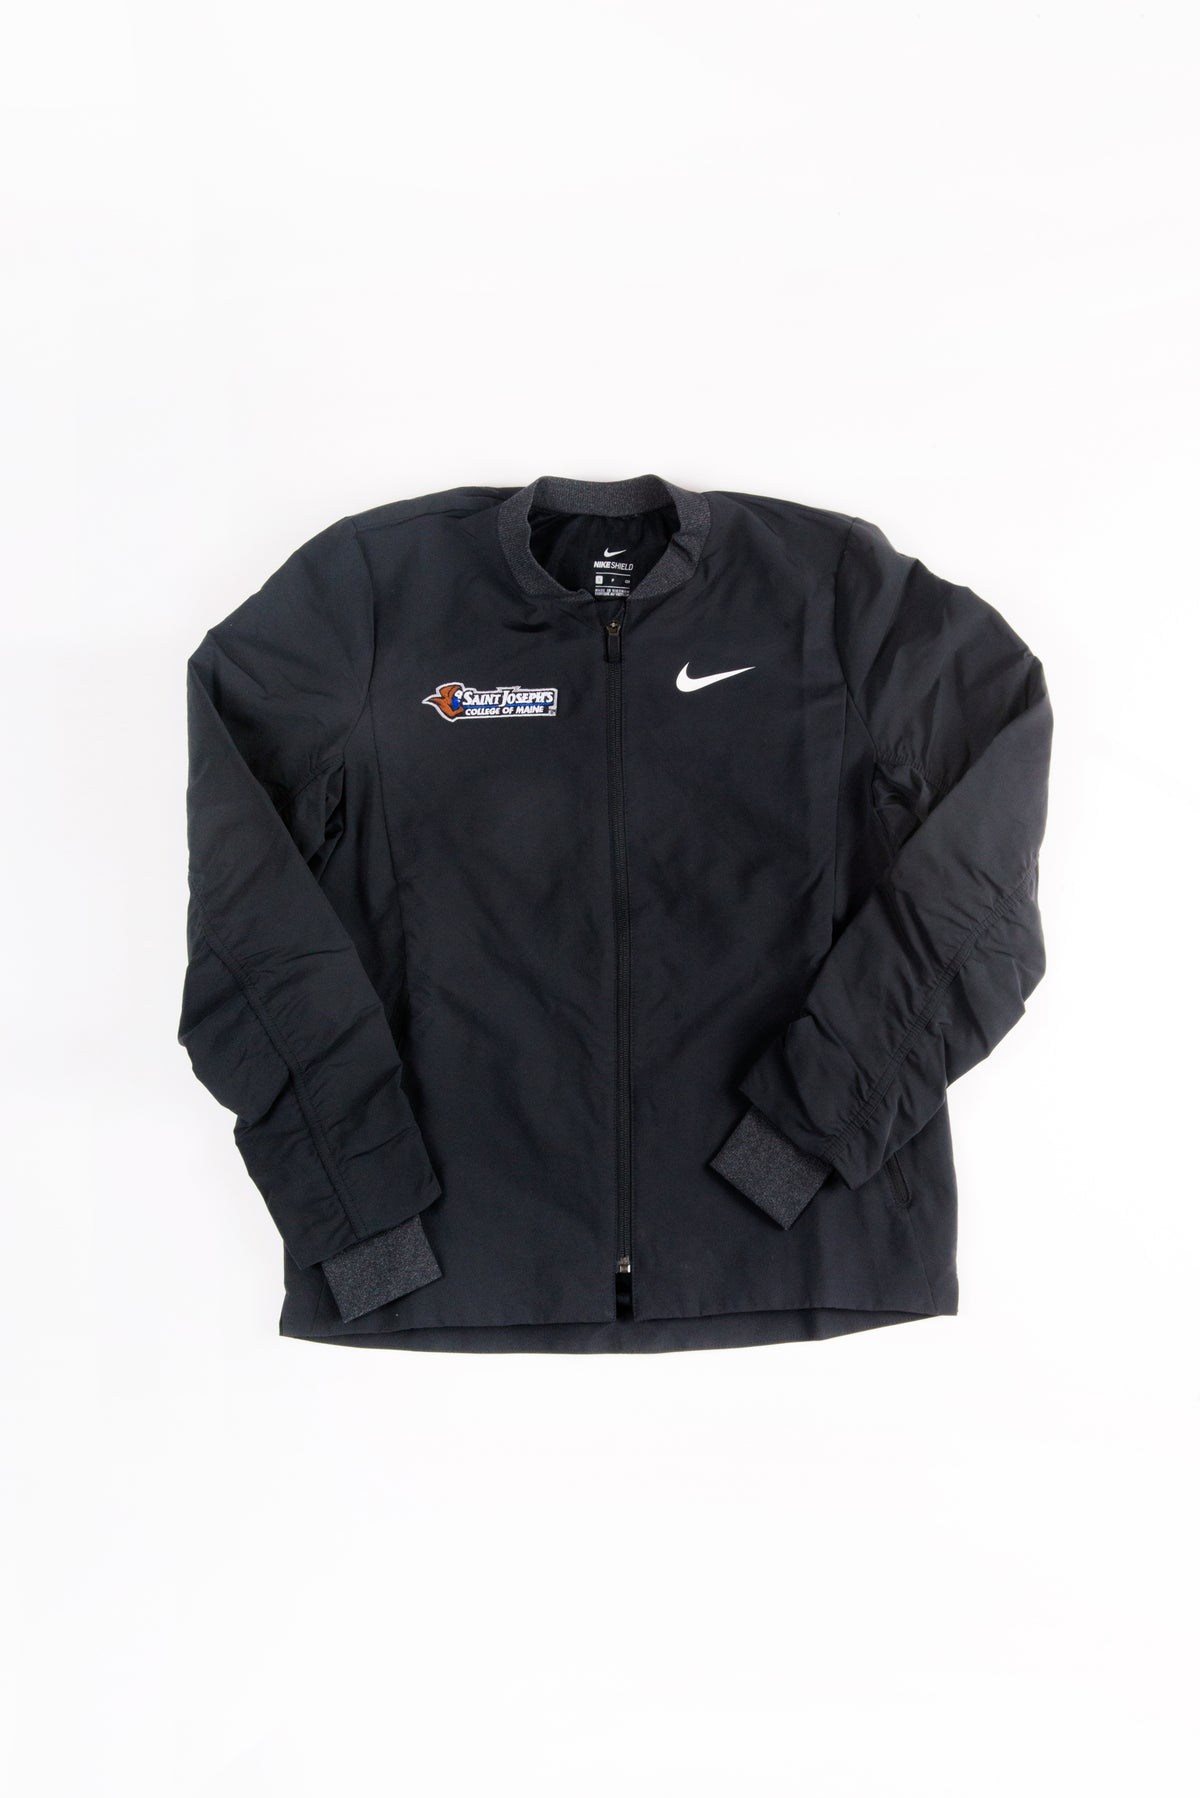 Women's Nike Bomber Jacket